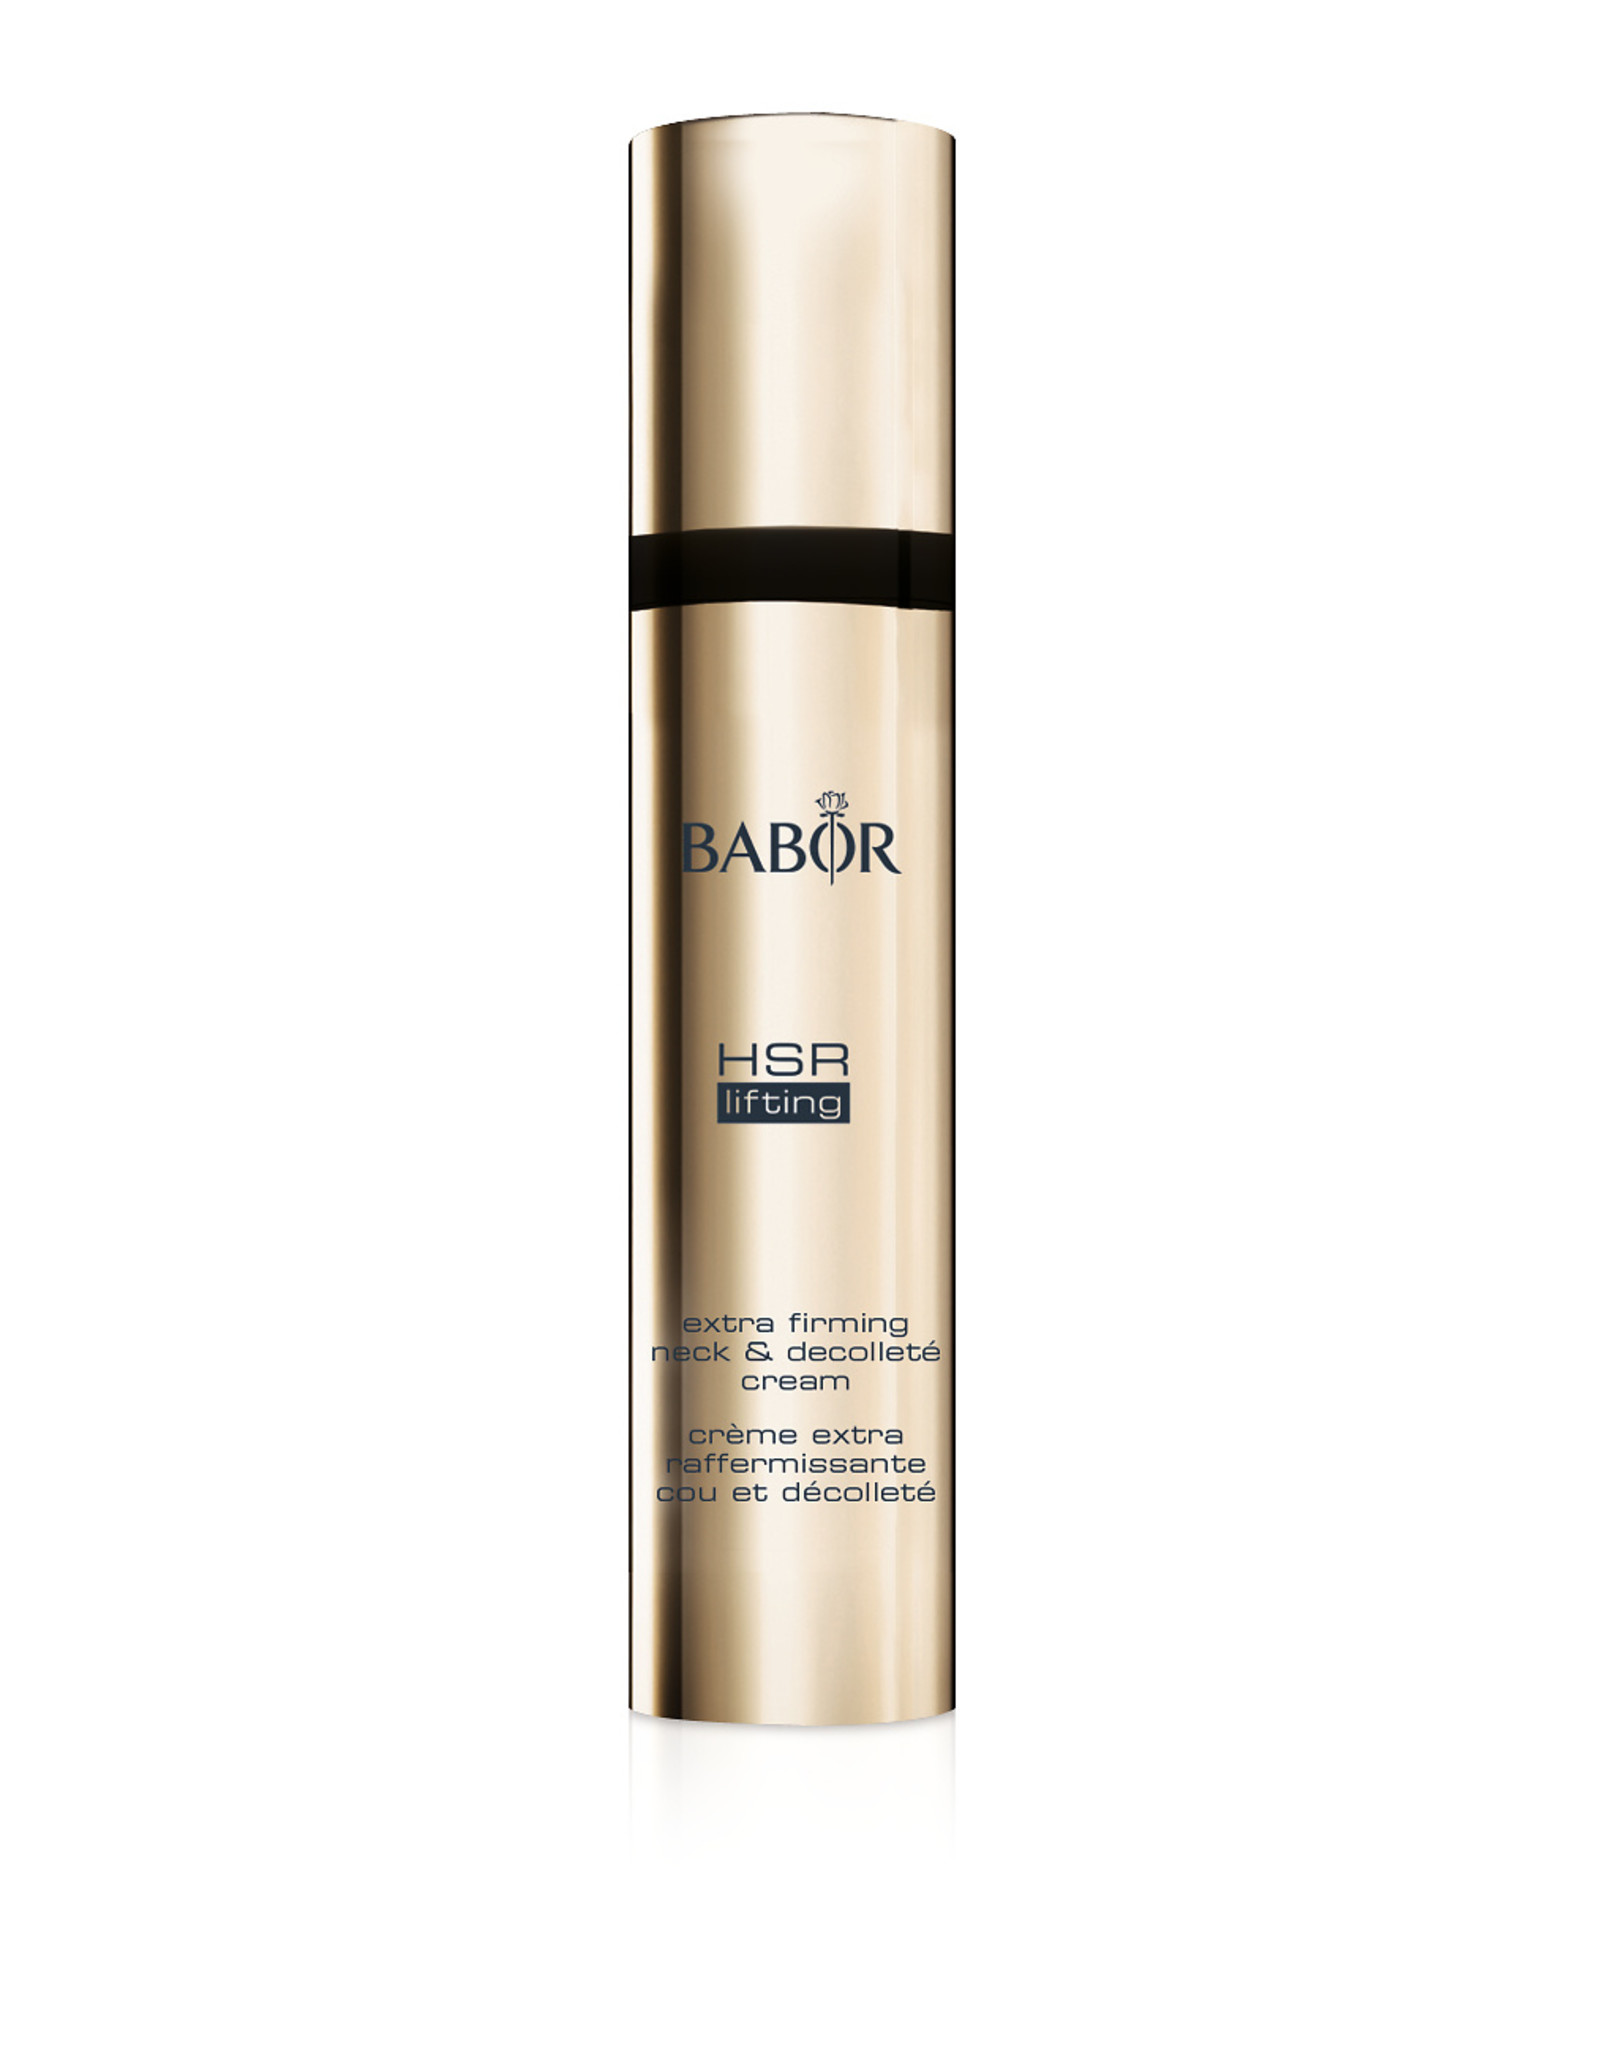 BABOR HSR NECK & DECOLLETE CREAM 50 ML